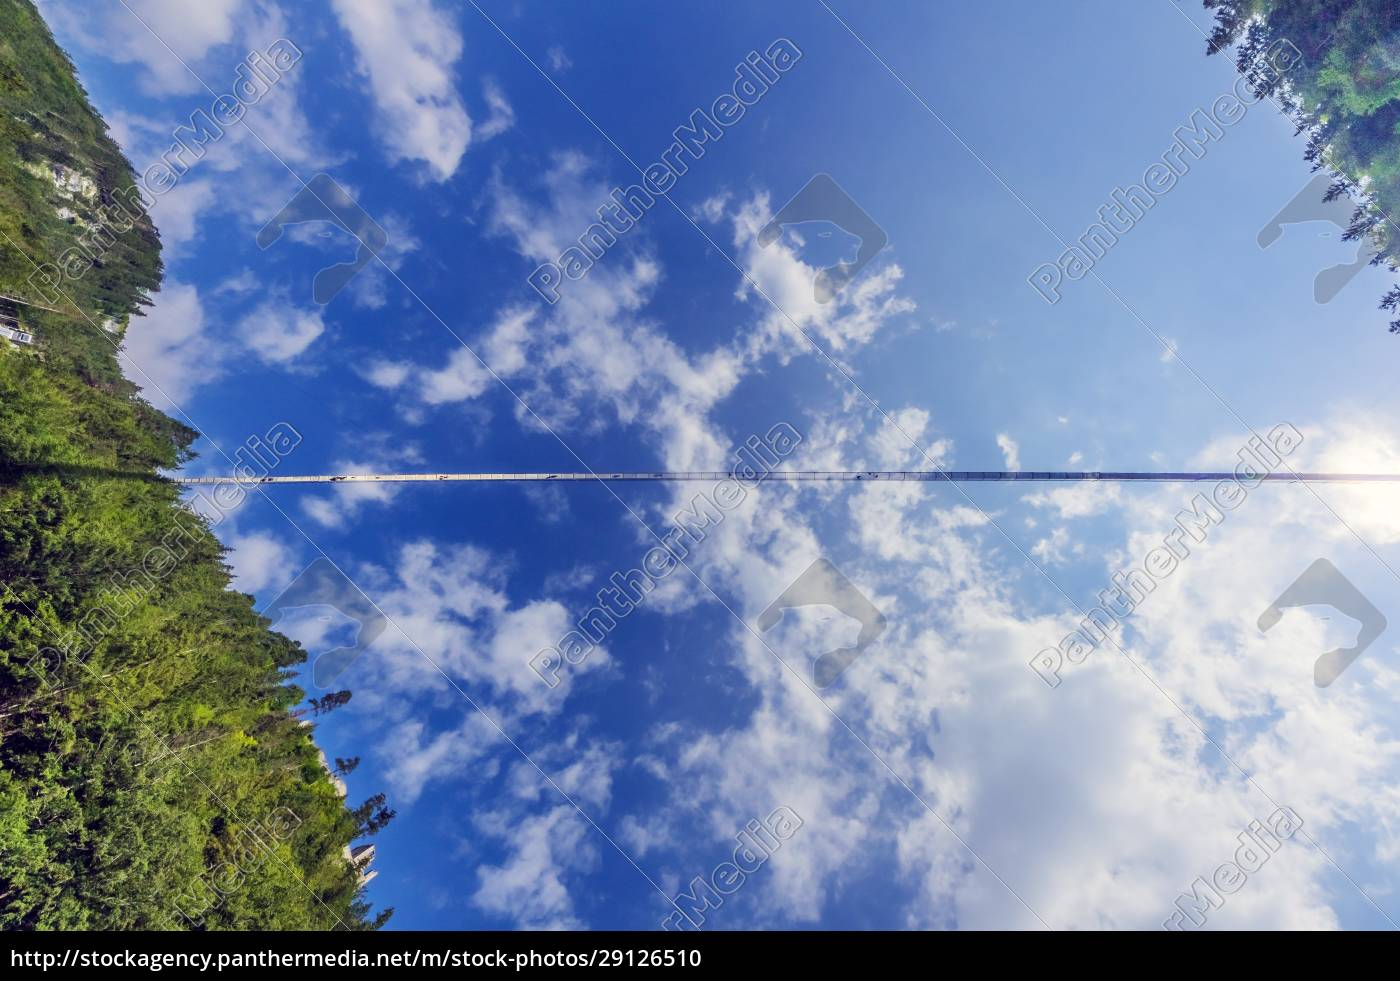 austria, , tyrol, , reutte, , highline179, stretching, against - 29126510